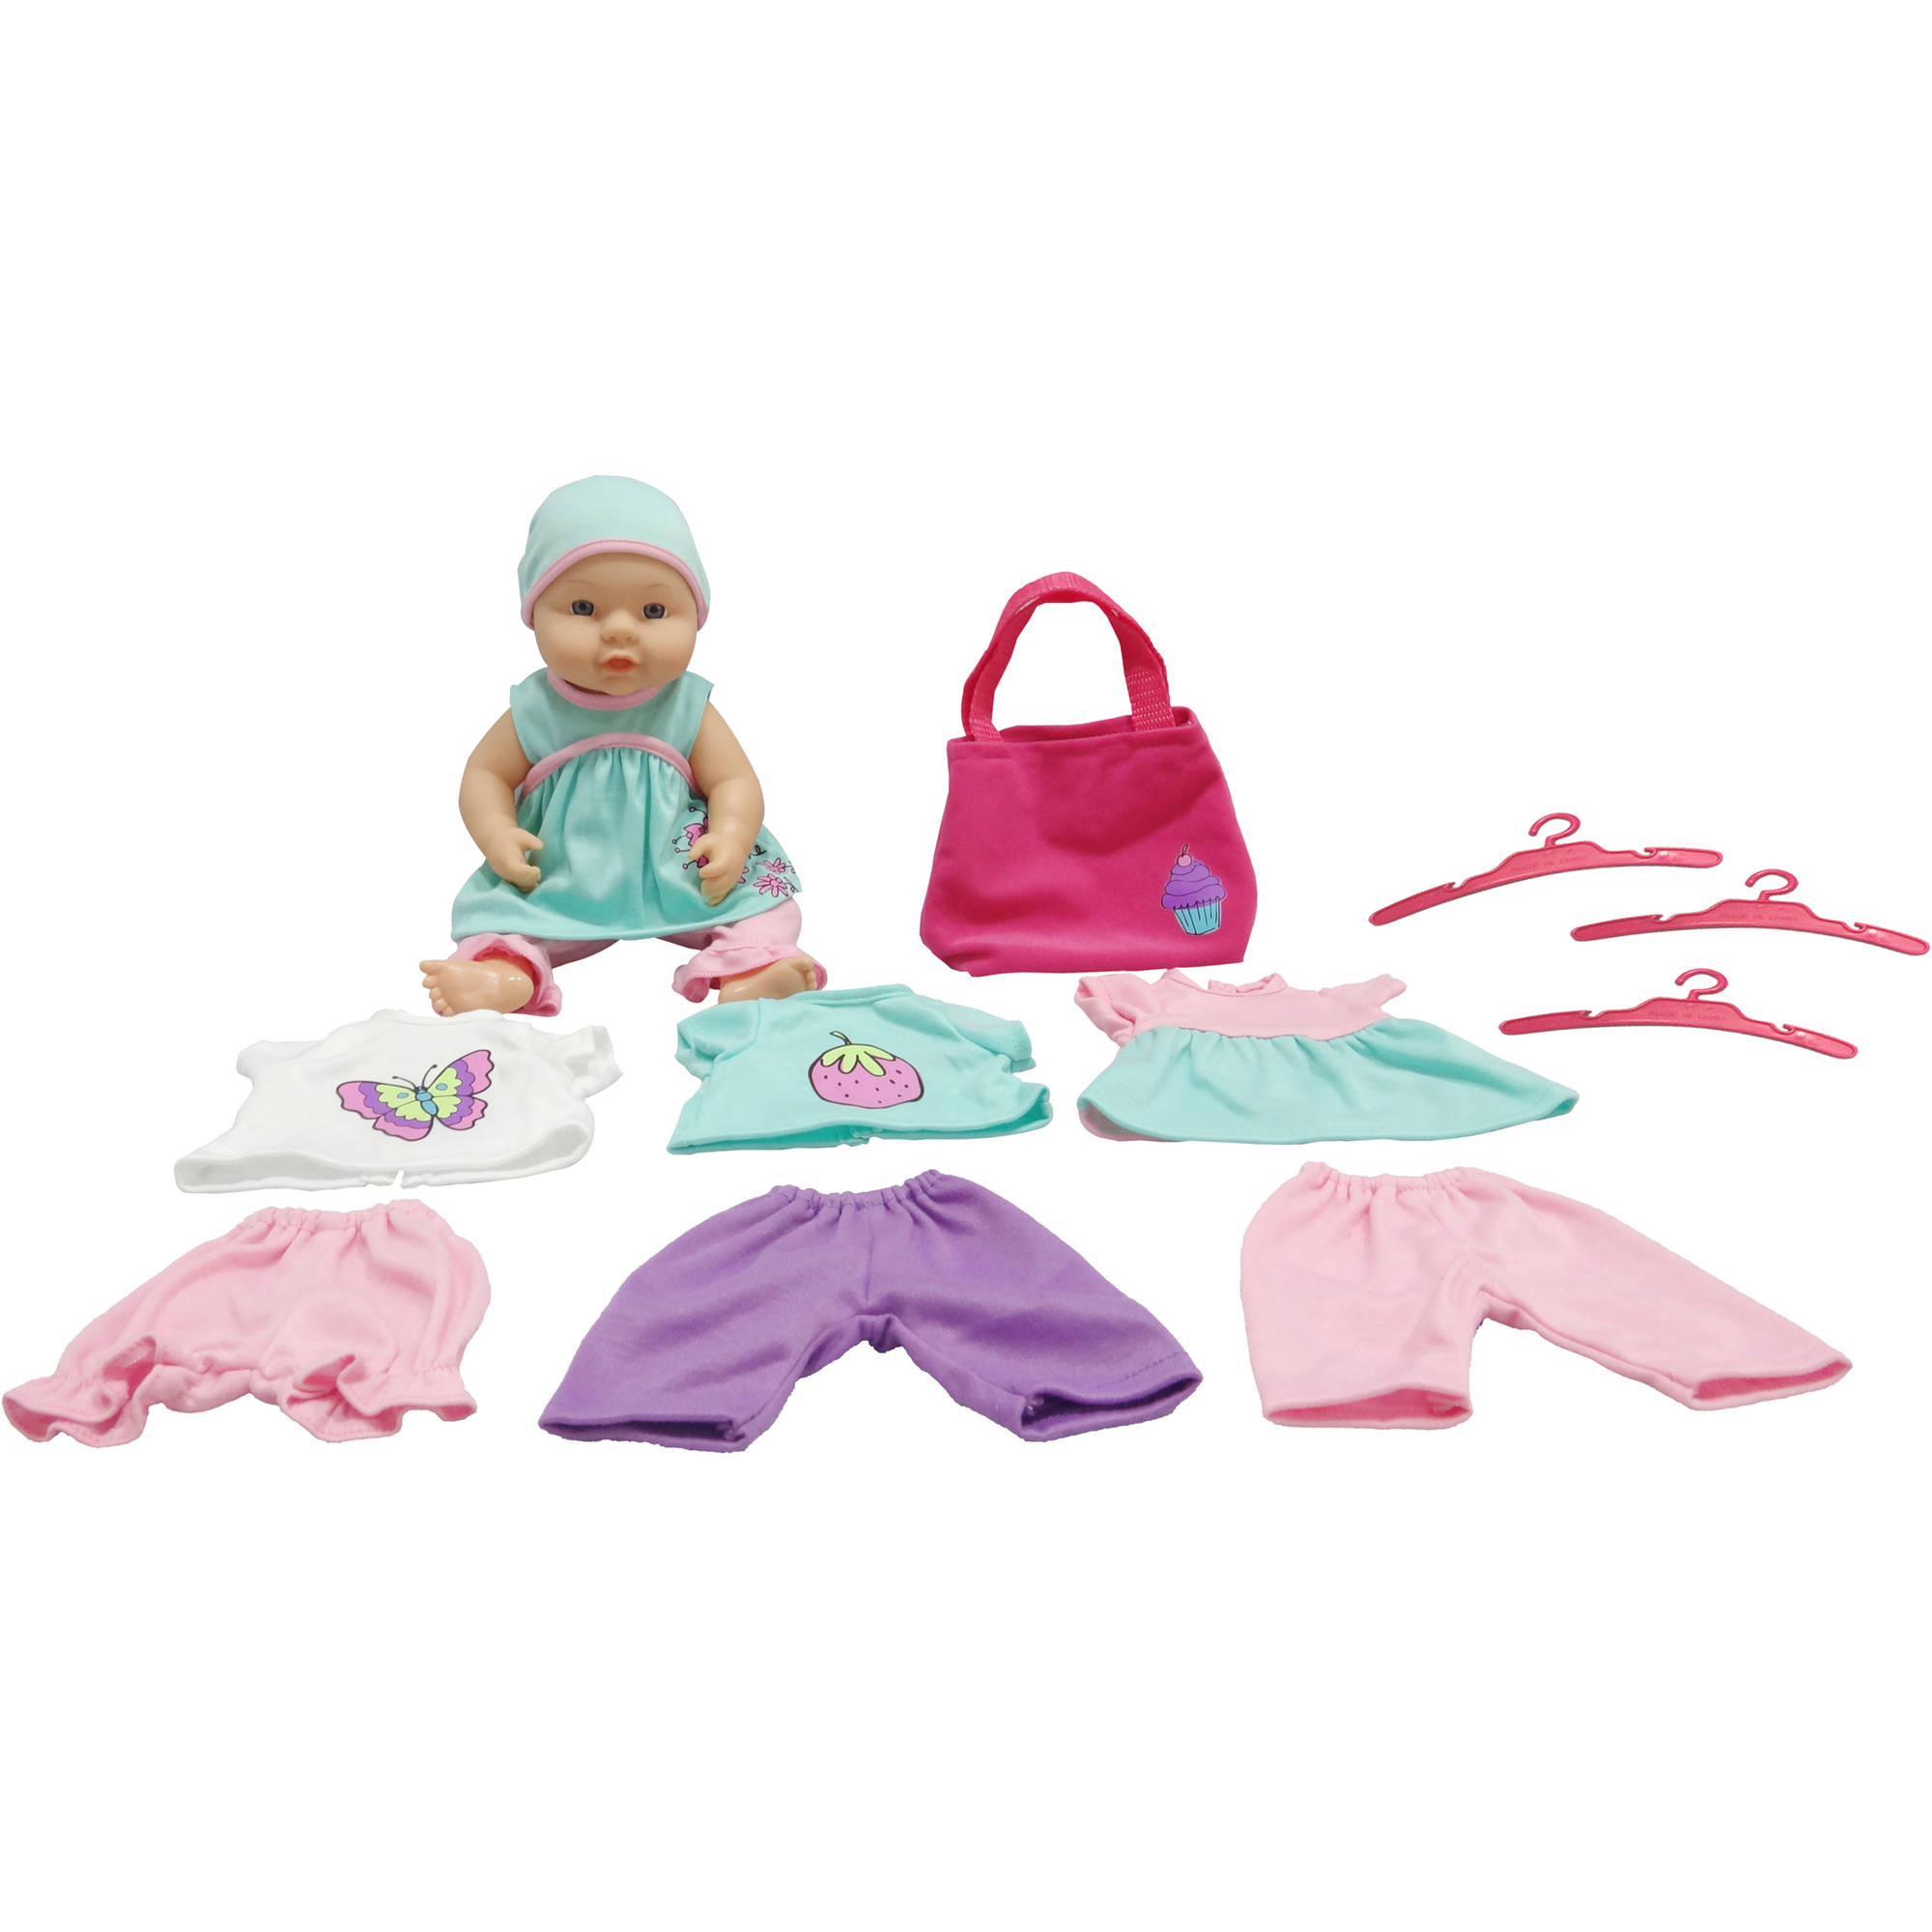 My Sweet Love Baby Doll with Wardrobe Set, Caucasian